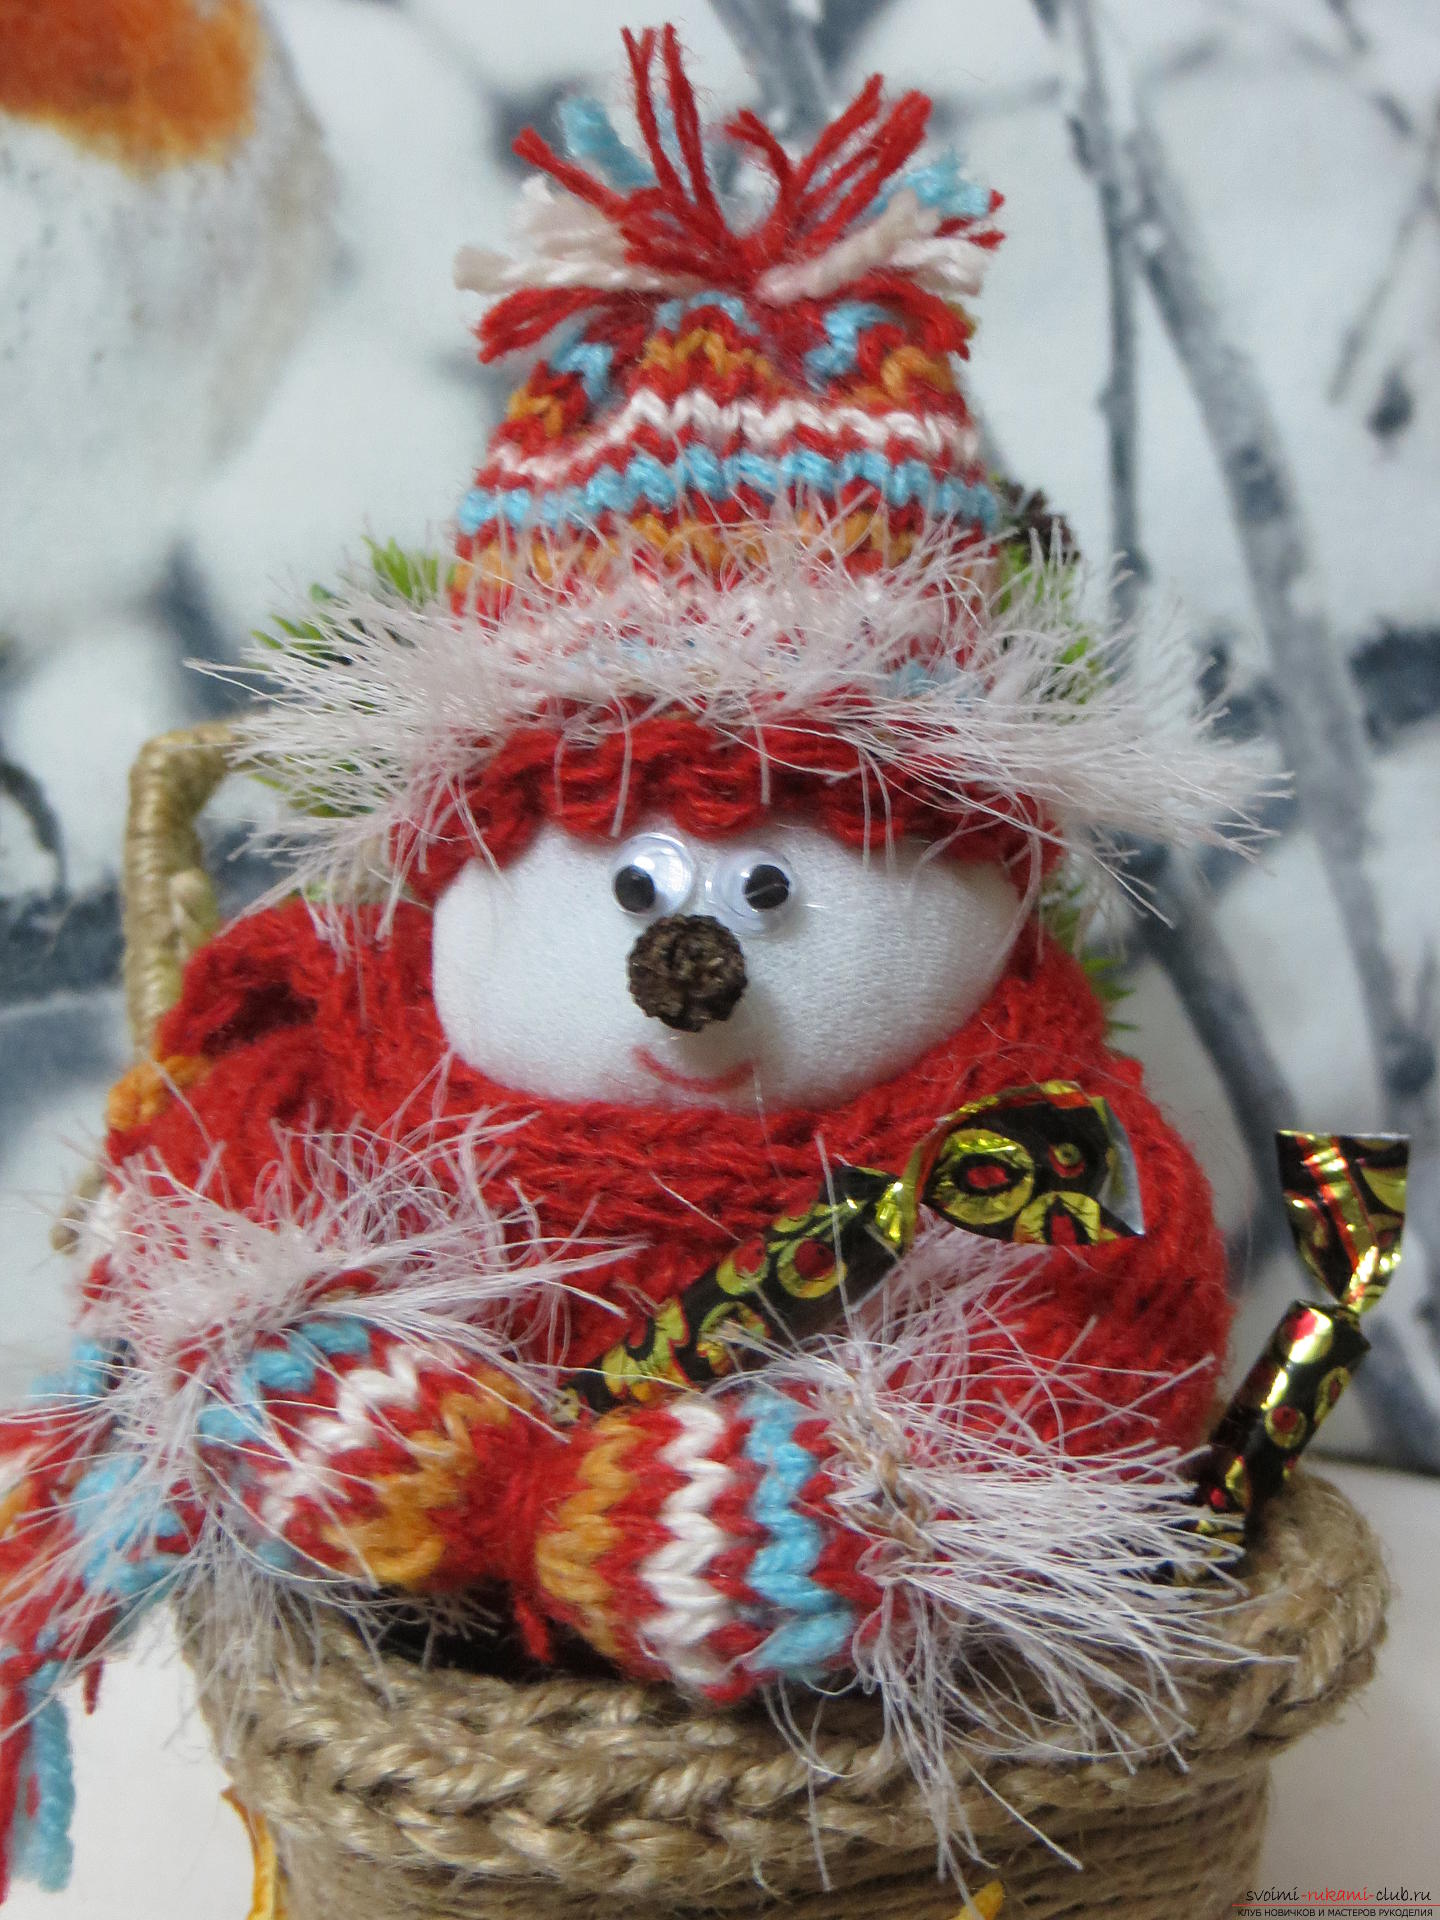 New Year is a wonderful holiday, when the time of miracles comes. New Year's handicrafts adorn the house and bring joy to the children, because the New Year's snowman with gifts will bring the best candies .. Photo №2